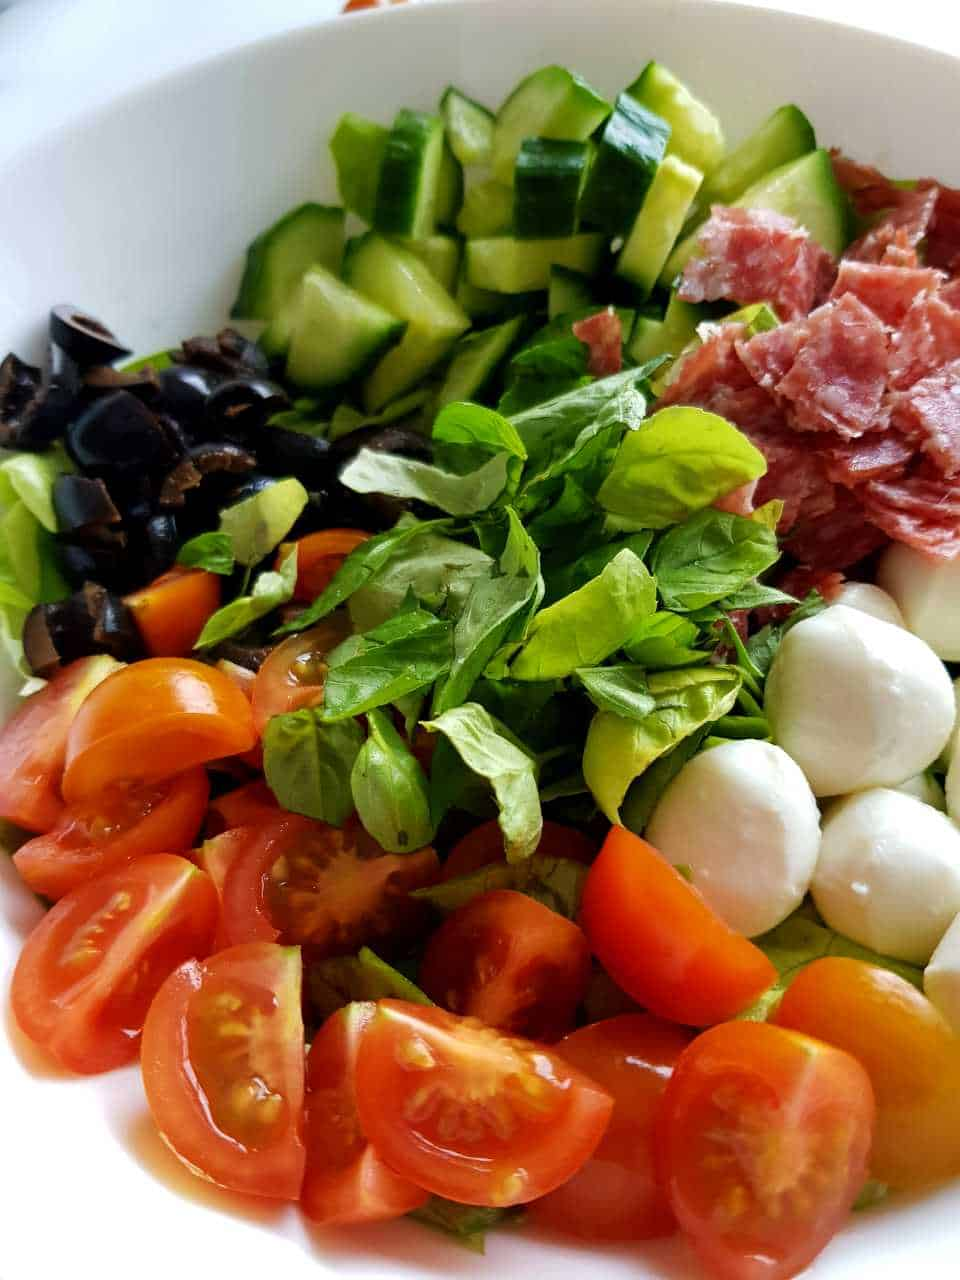 Italian salad with salami in a white bowl.